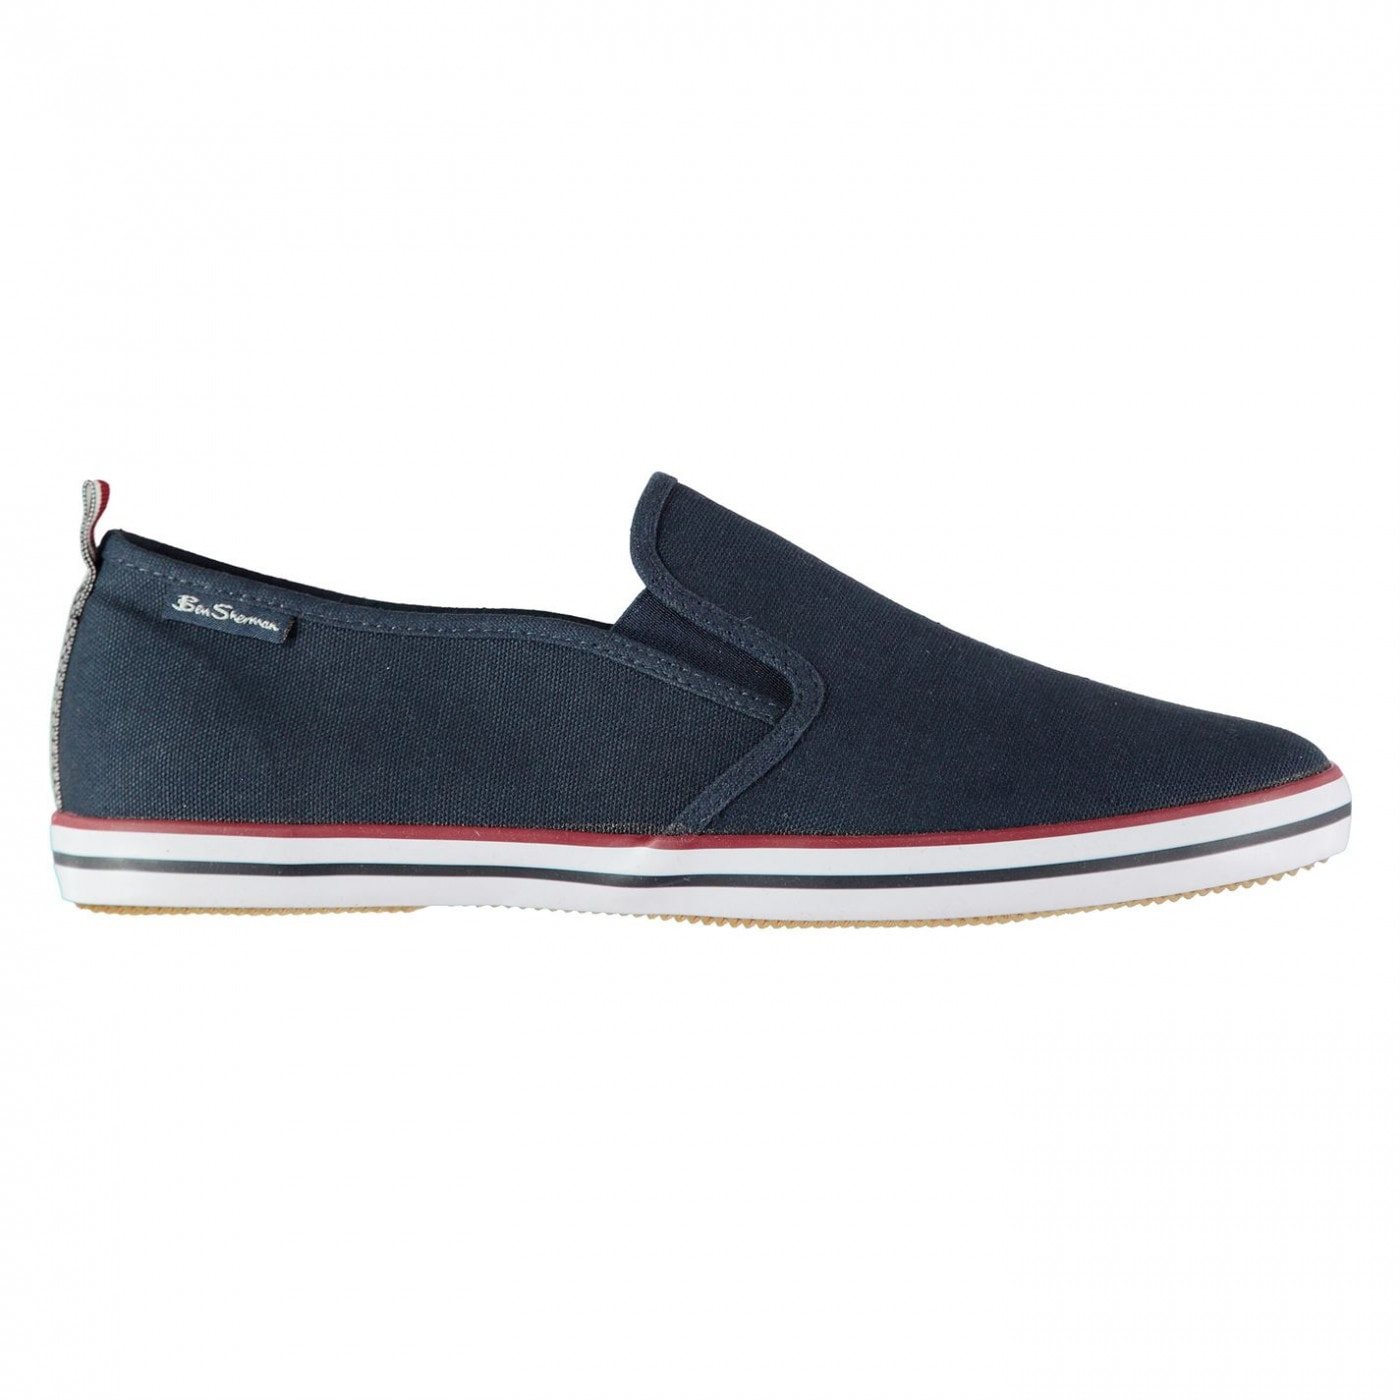 Ben Sherman Leigh Slip On Canvas Trainers